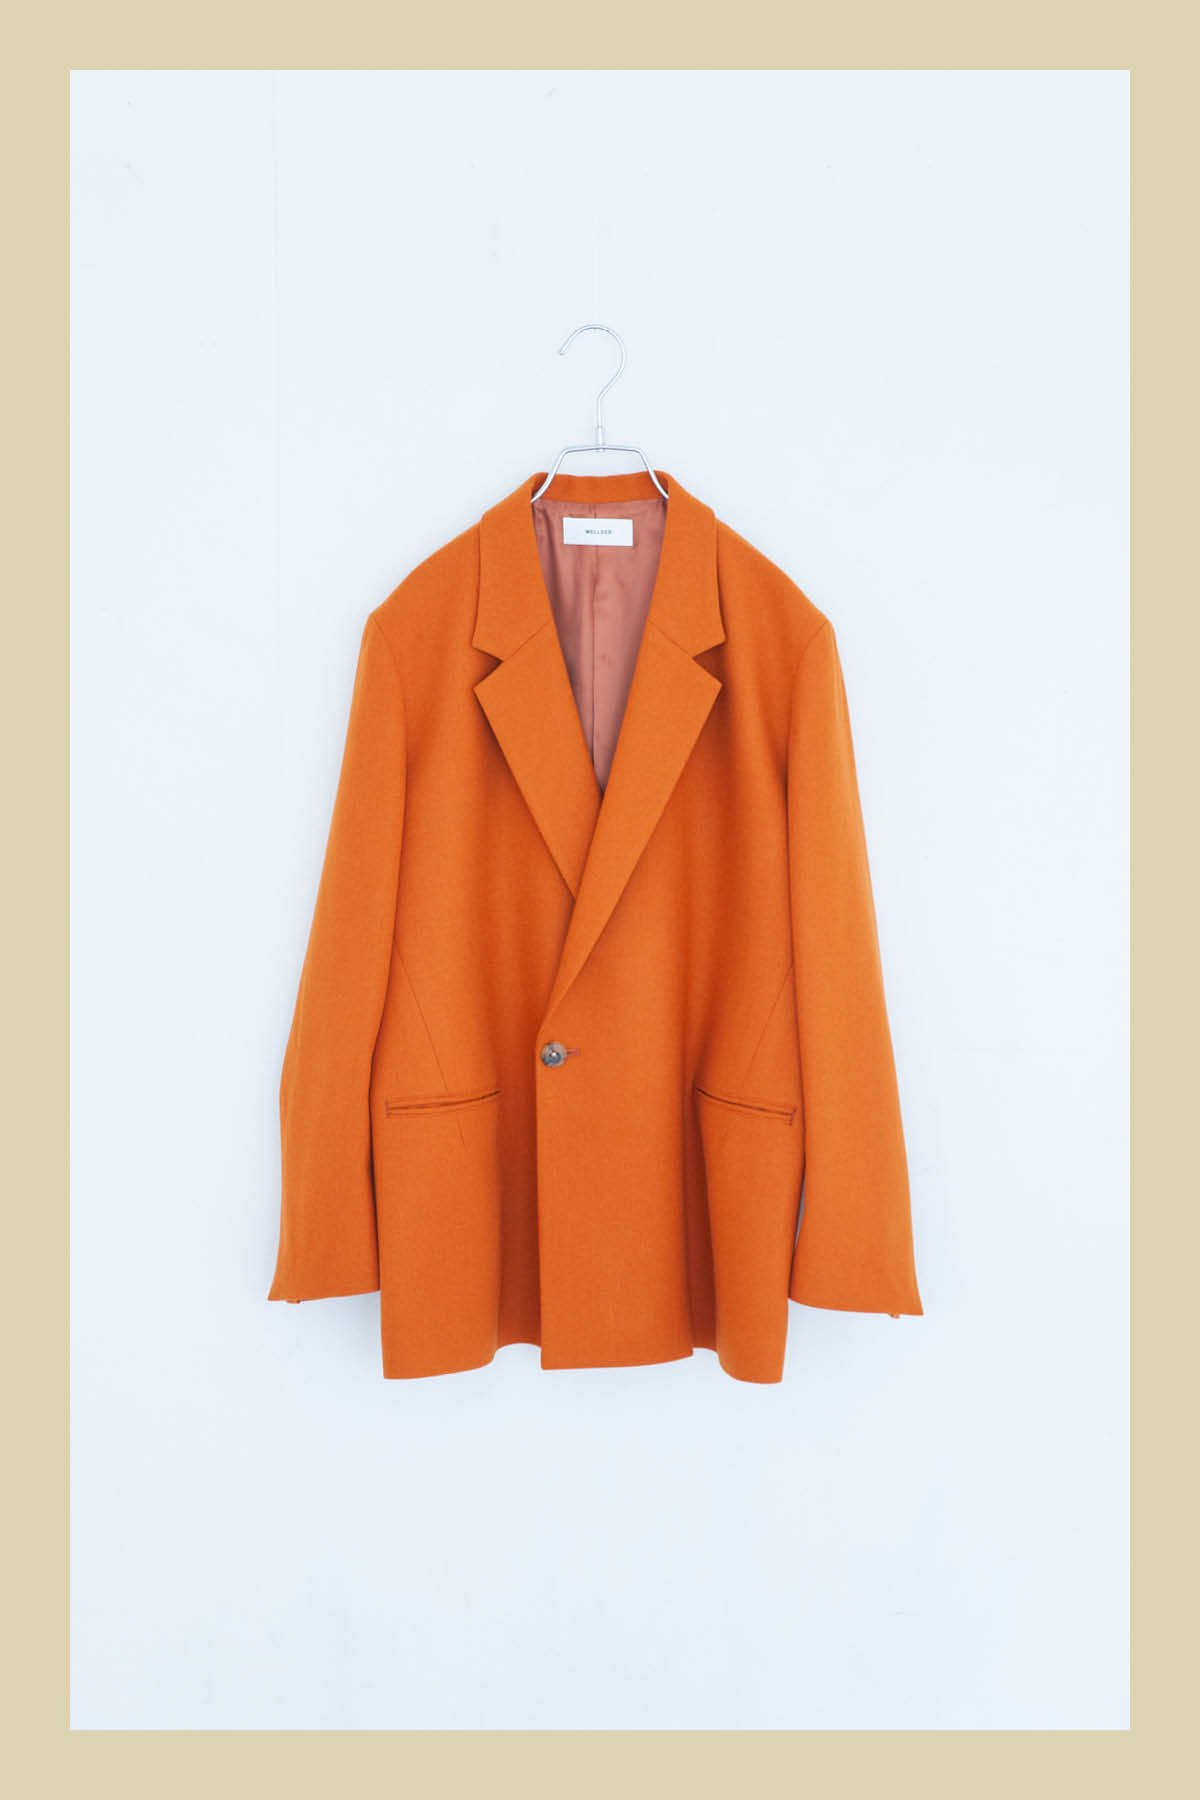 WELLDER / Double Breasted Jacket